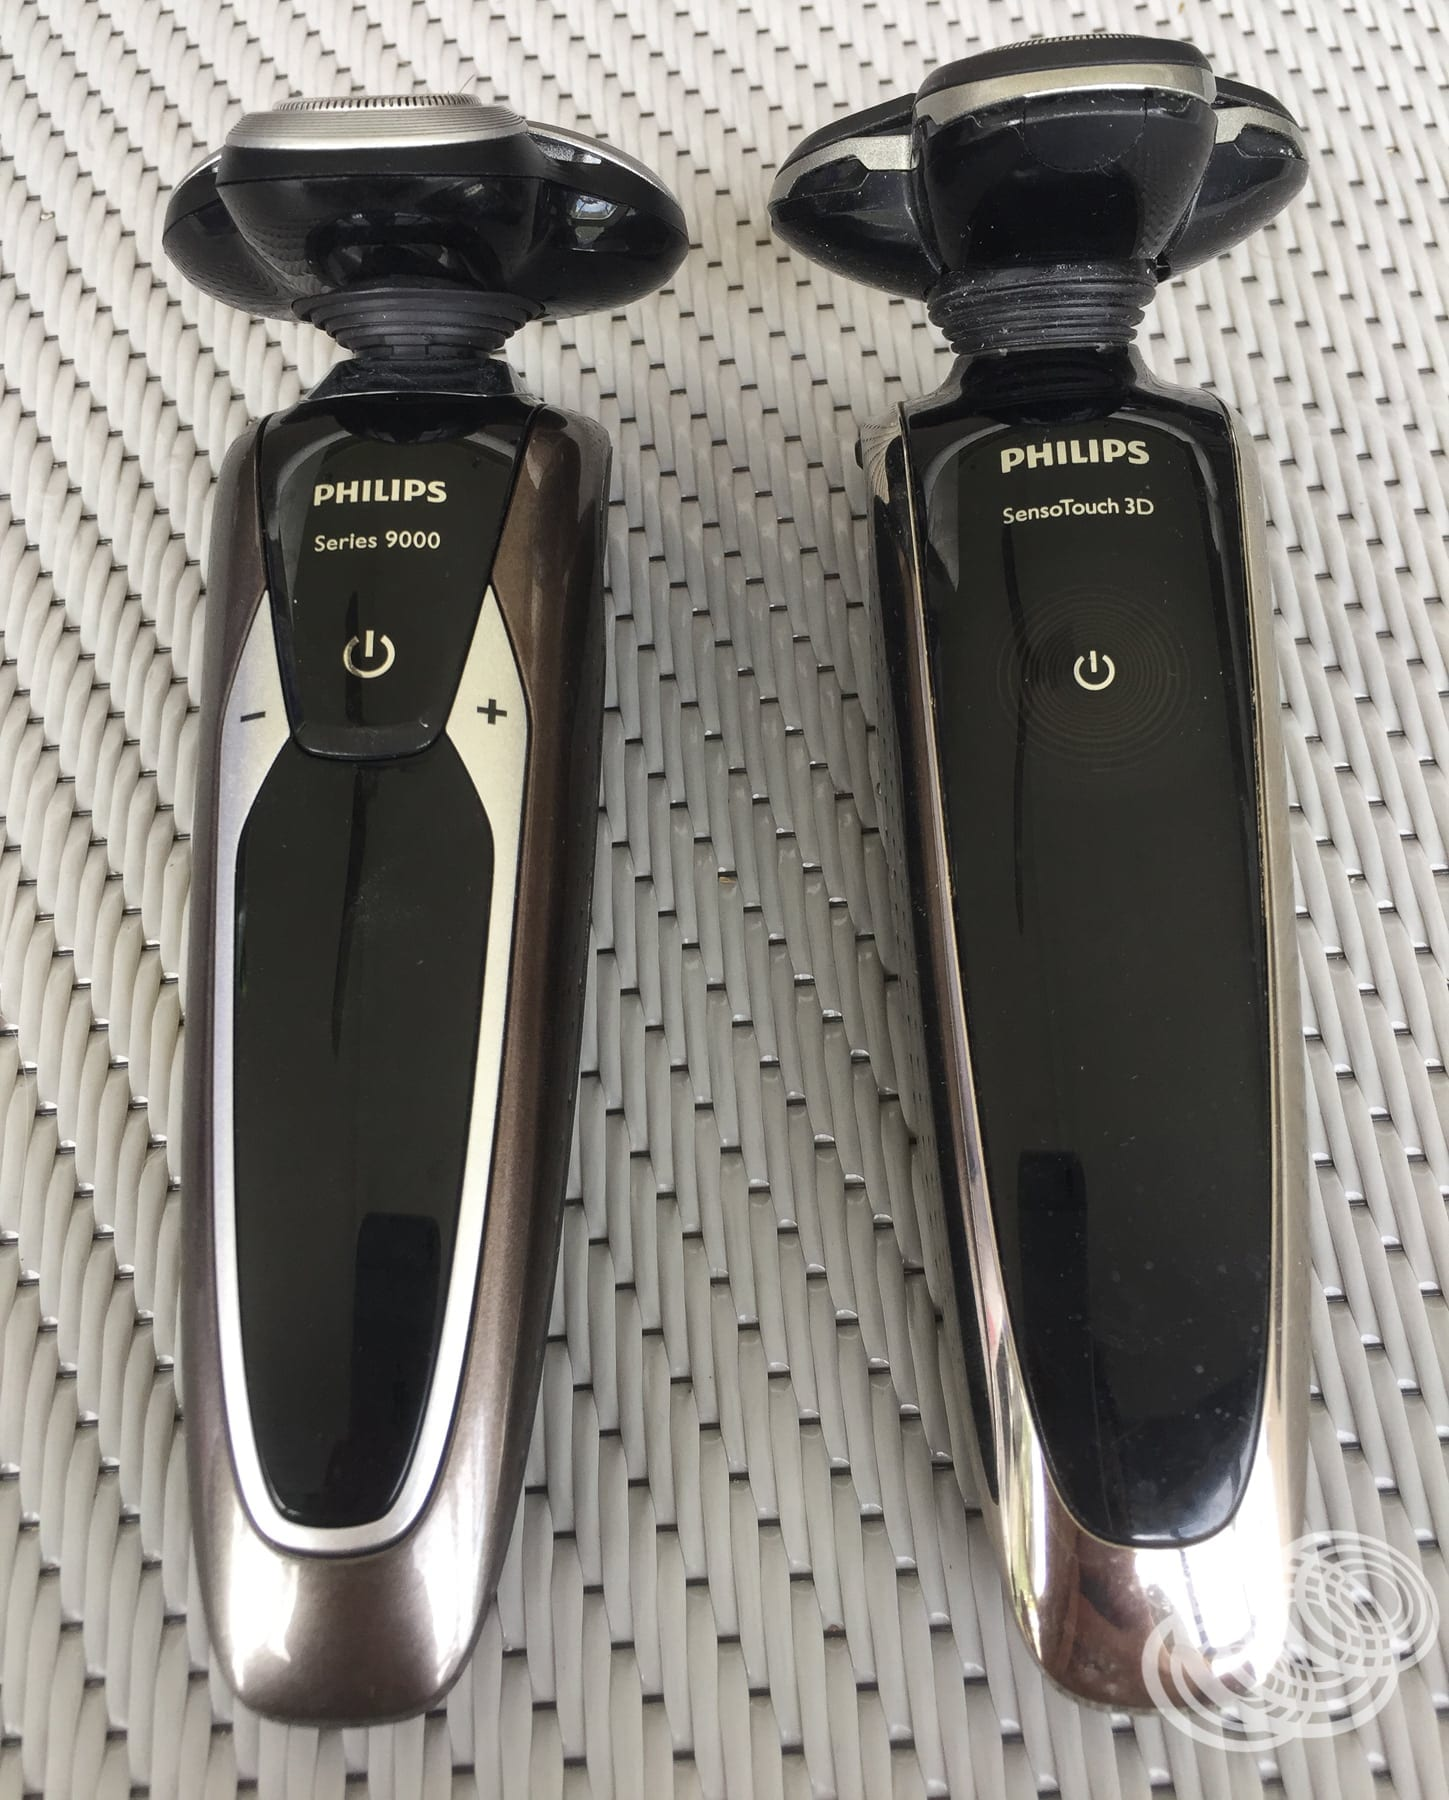 The new Philips 9000 Series (left) side-by-side with the SensoTouch 3D (right).